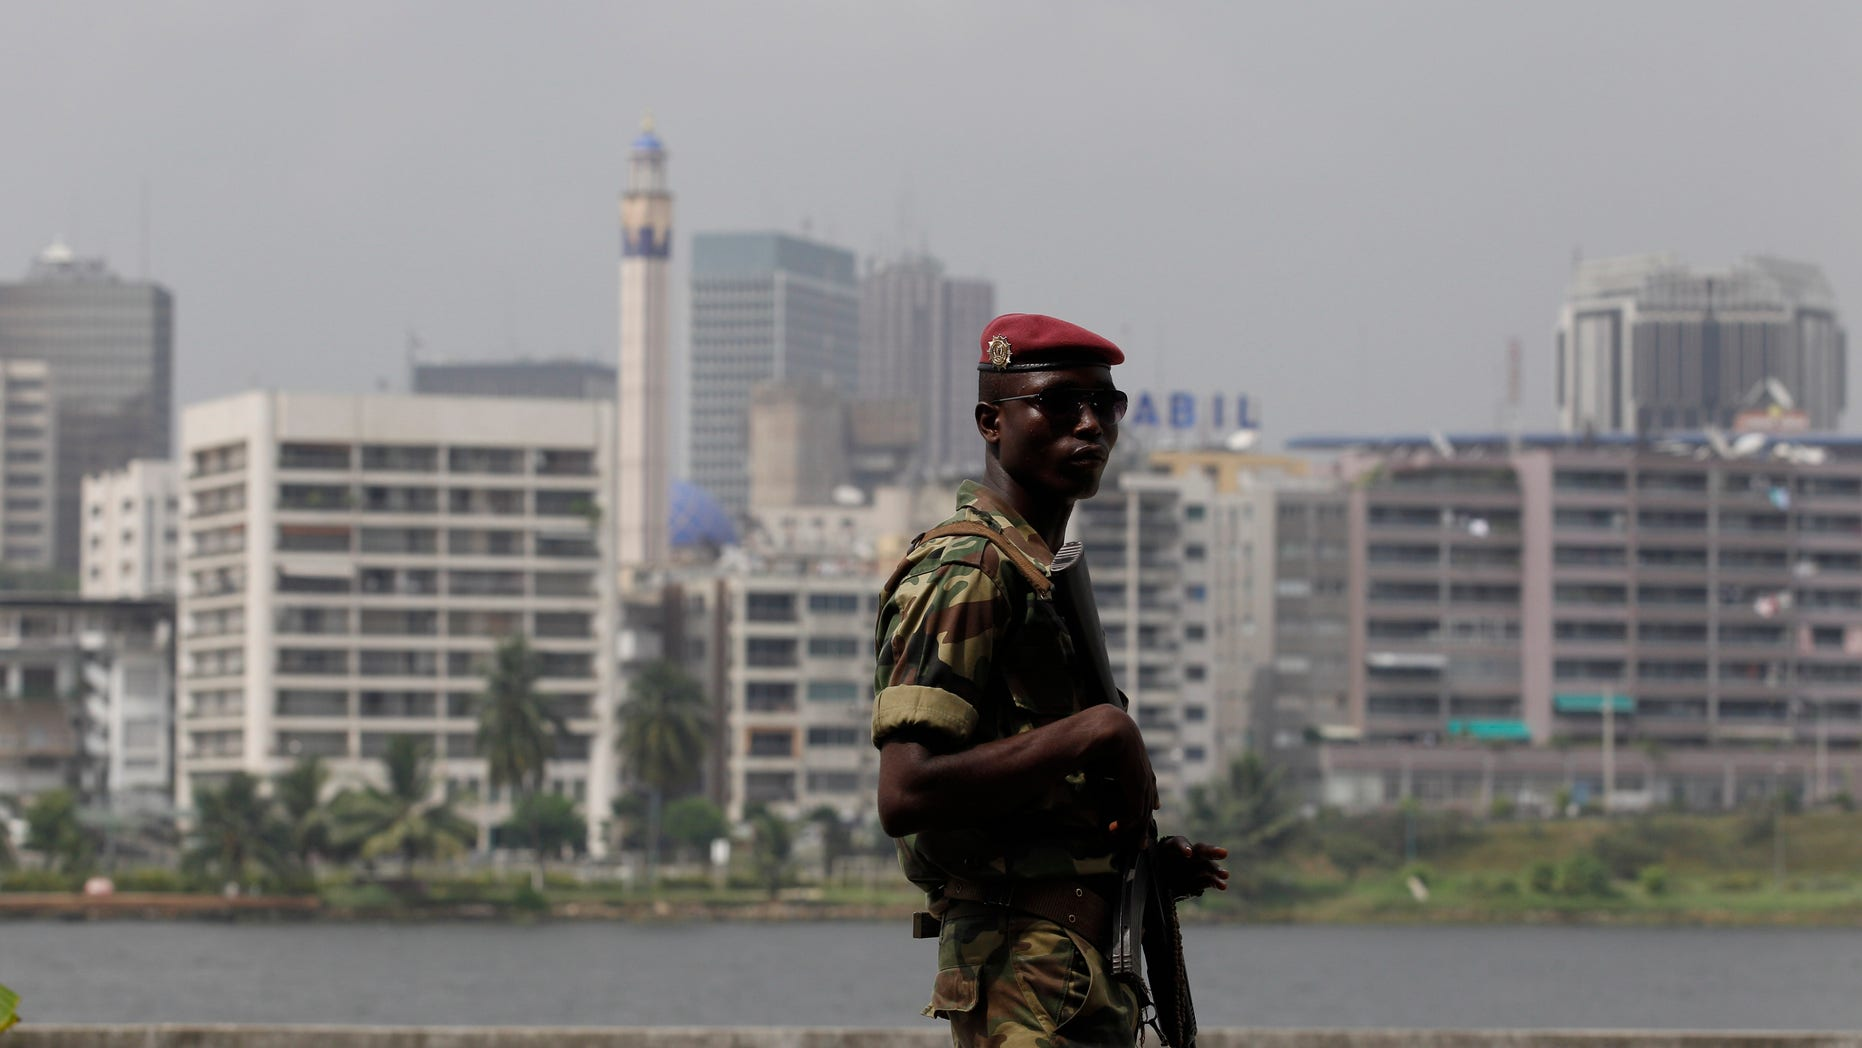 Jan. 9, 2011: Against a backdrop of Abidjan's central Plateau district, a soldier provides security at a rally in support of incumbent president Laurent Gbagbo, at the Palace of Culture in Abidjan, Ivory Coast. Former Nigerian President Olusegun Obasanjo was shuttling between meetings Sunday with the country's defiant president who refuses to cede power and the internationally recognized winner in the latest effort to resolve the post-election crisis. (AP)